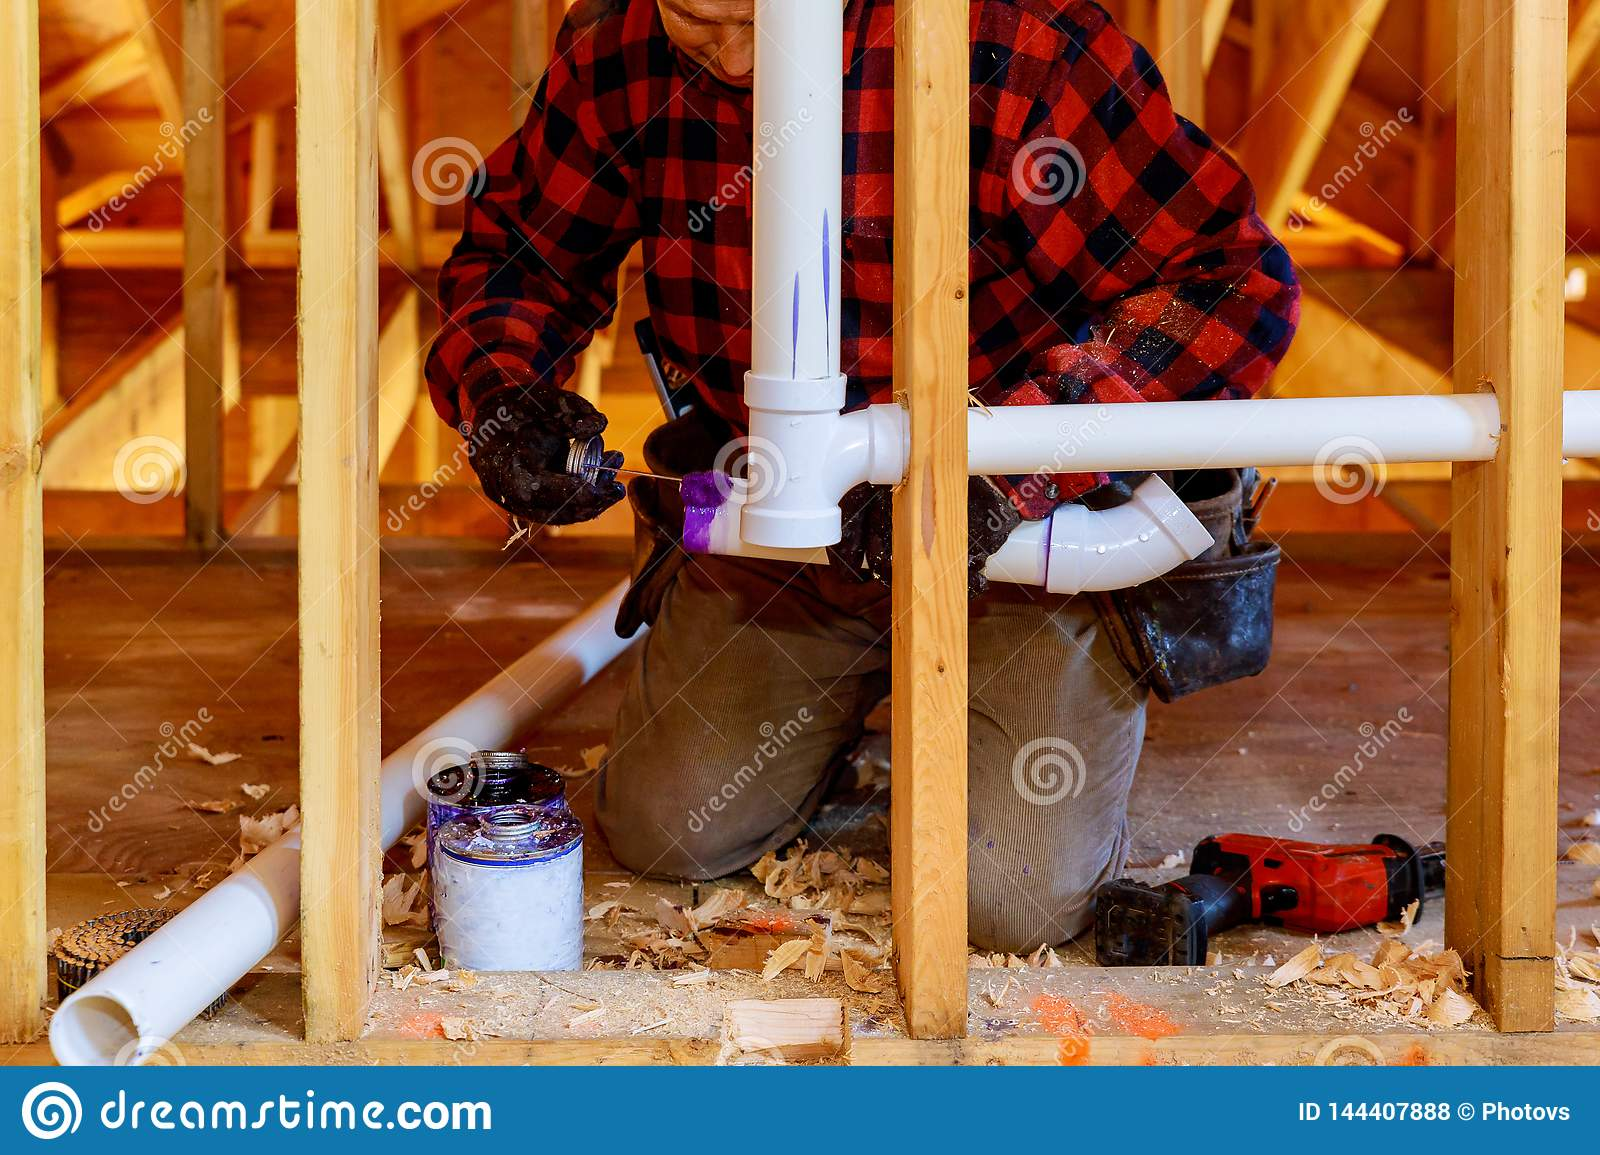 Applying plumber pipe drain and vent plumbing system at new home construction